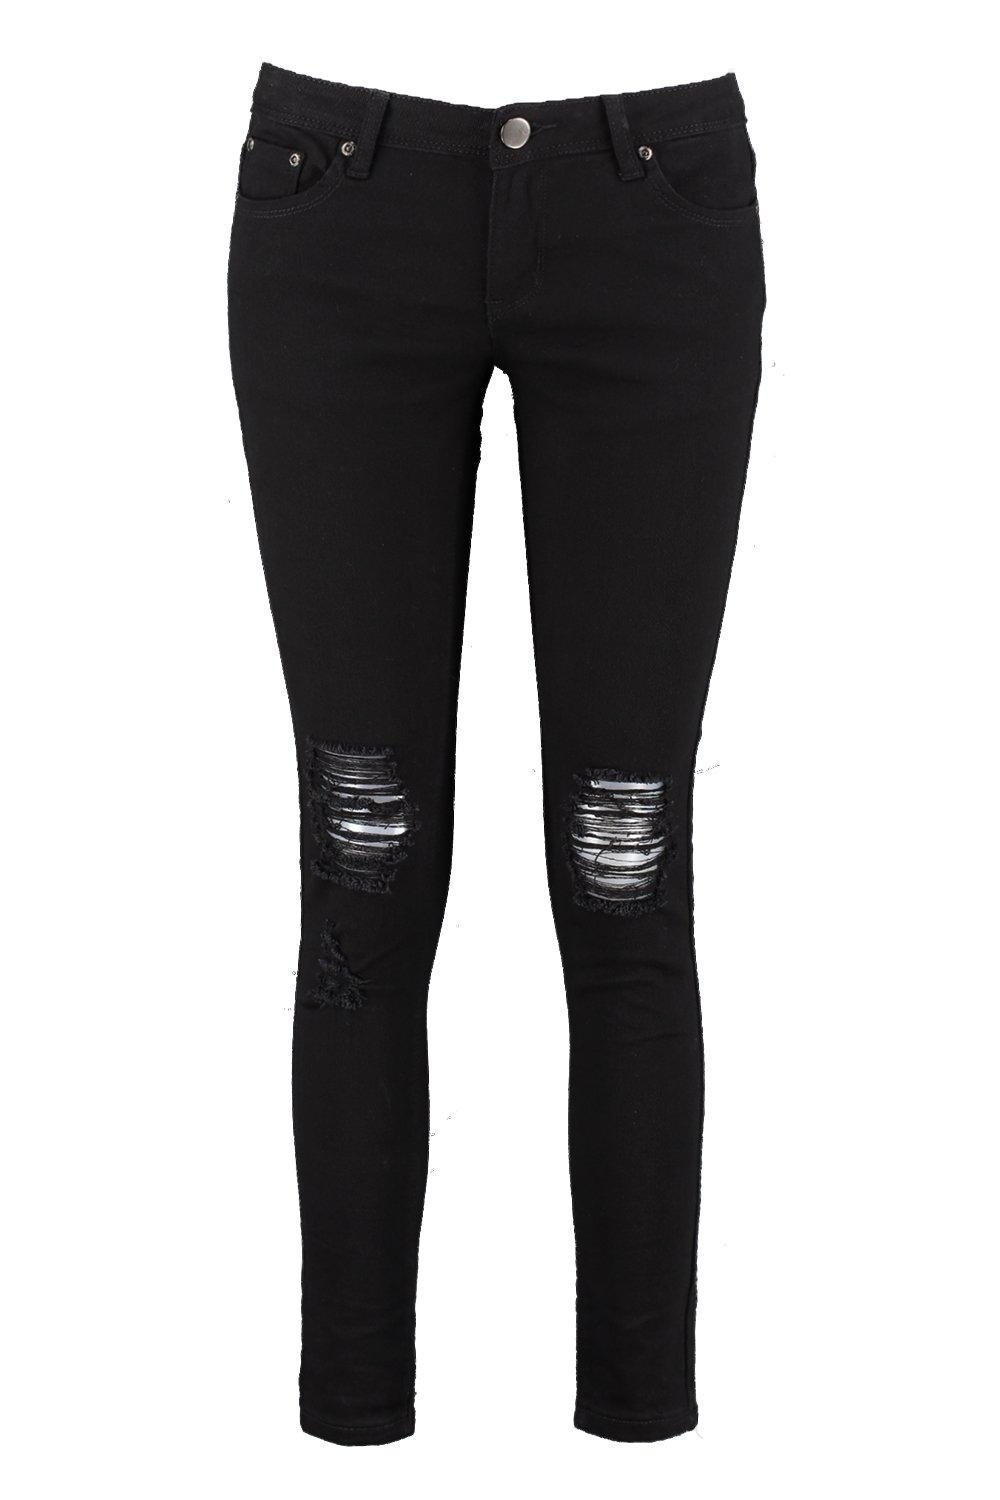 Boohoo Womens Laura Ripped Knee Black Skinny Jeans